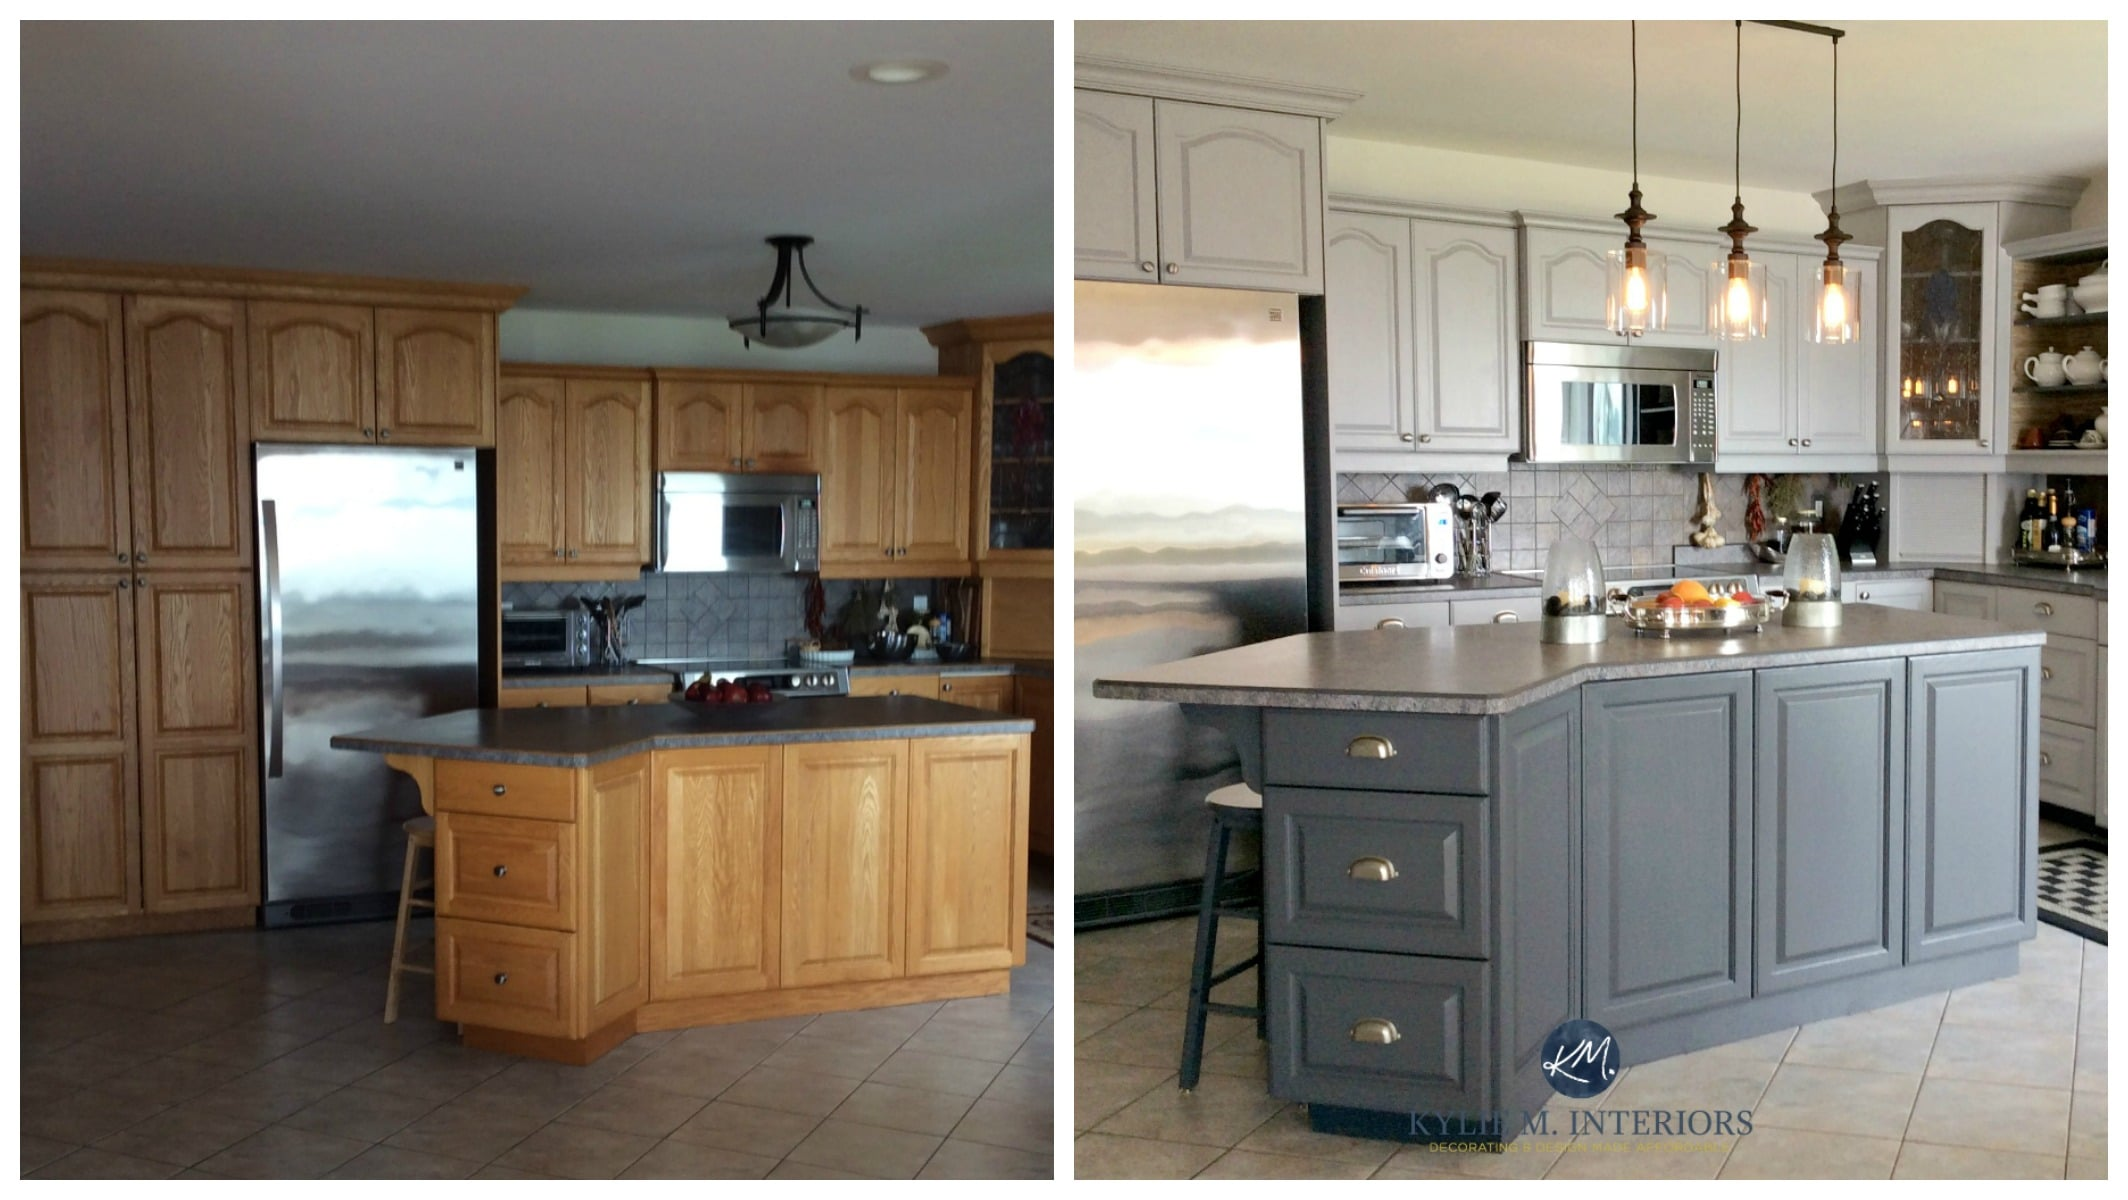 Our Painted Maple Cabinets – 2 Years Later on kitchen themes, kitchen design ideas, kitchen accessories, apartment kitchen ideas, kitchen cabinets, kitchen art, kitchen decor, kitchen units product, kitchen color schemes, kitchen walls, yellow kitchen ideas, kitchen painting ideas, backsplash ideas, kitchen remodel, kitchen paint color ideas, kitchen island, dining room ideas, small kitchen ideas, rustic kitchen ideas, kitchen decorations,